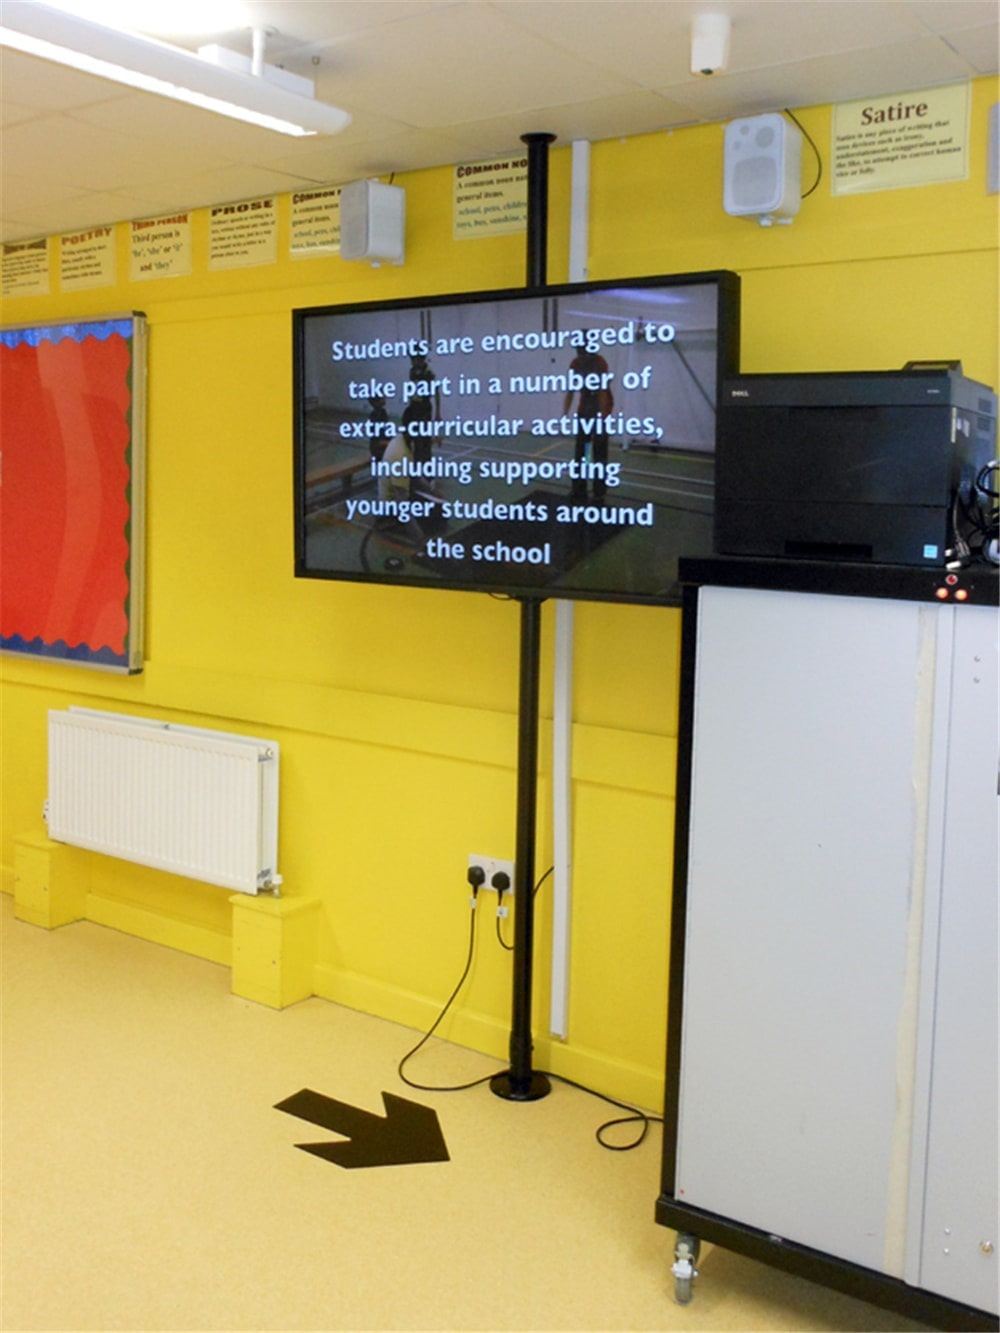 Education and digital signage display